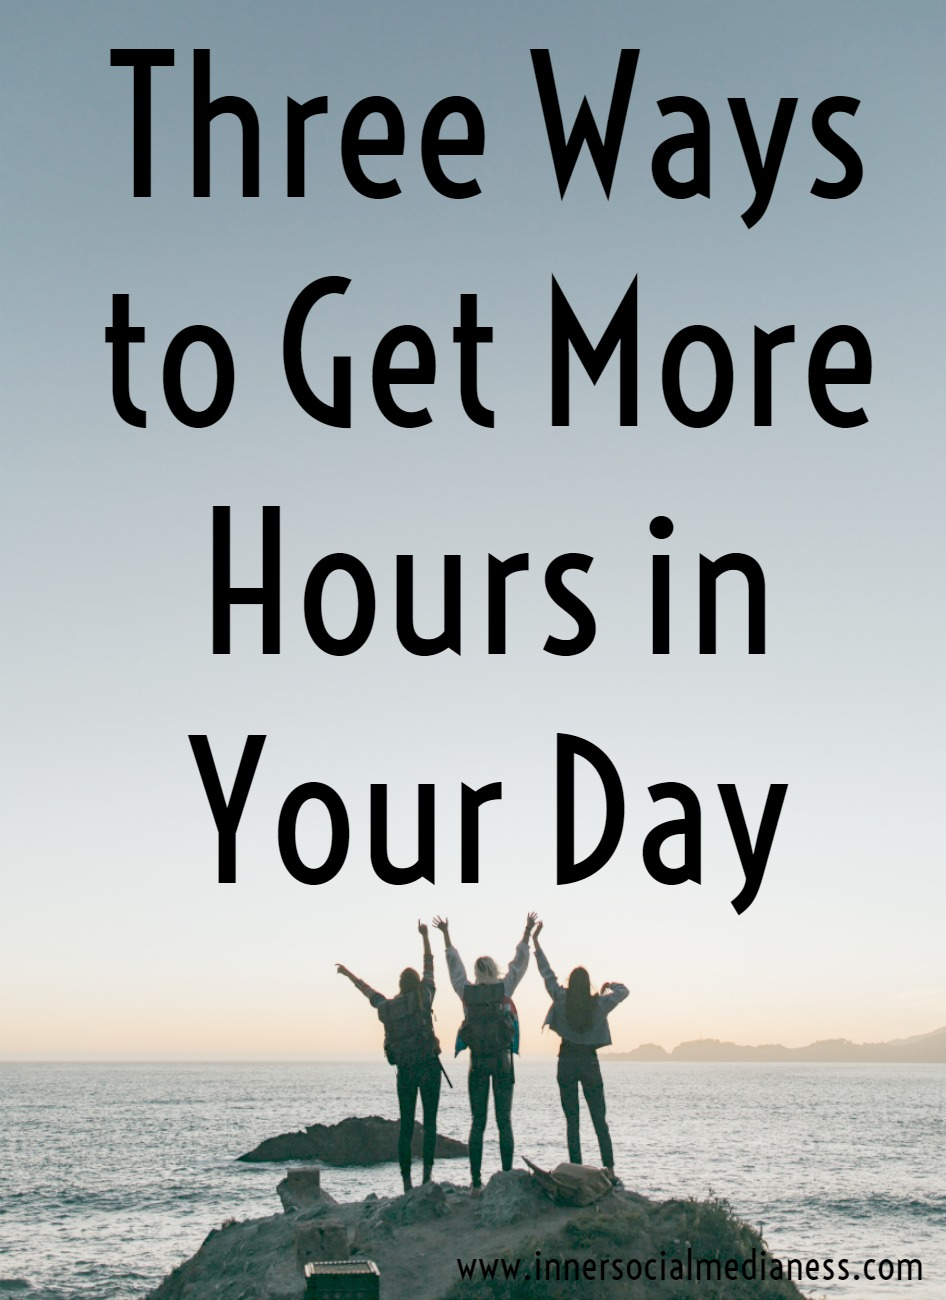 Three Ways to Get More Hours in Your Day - You've got this list of all the amazing things you want to create and you're trying to figure out how you're going to find the time to get it all done. I know you've seen this problem before. This isn't anything new about being in this place except now it's finally time to find a solution to find more time. Other than hiring someone to outsource part of your work to, what else can you do to get more hours in your day?